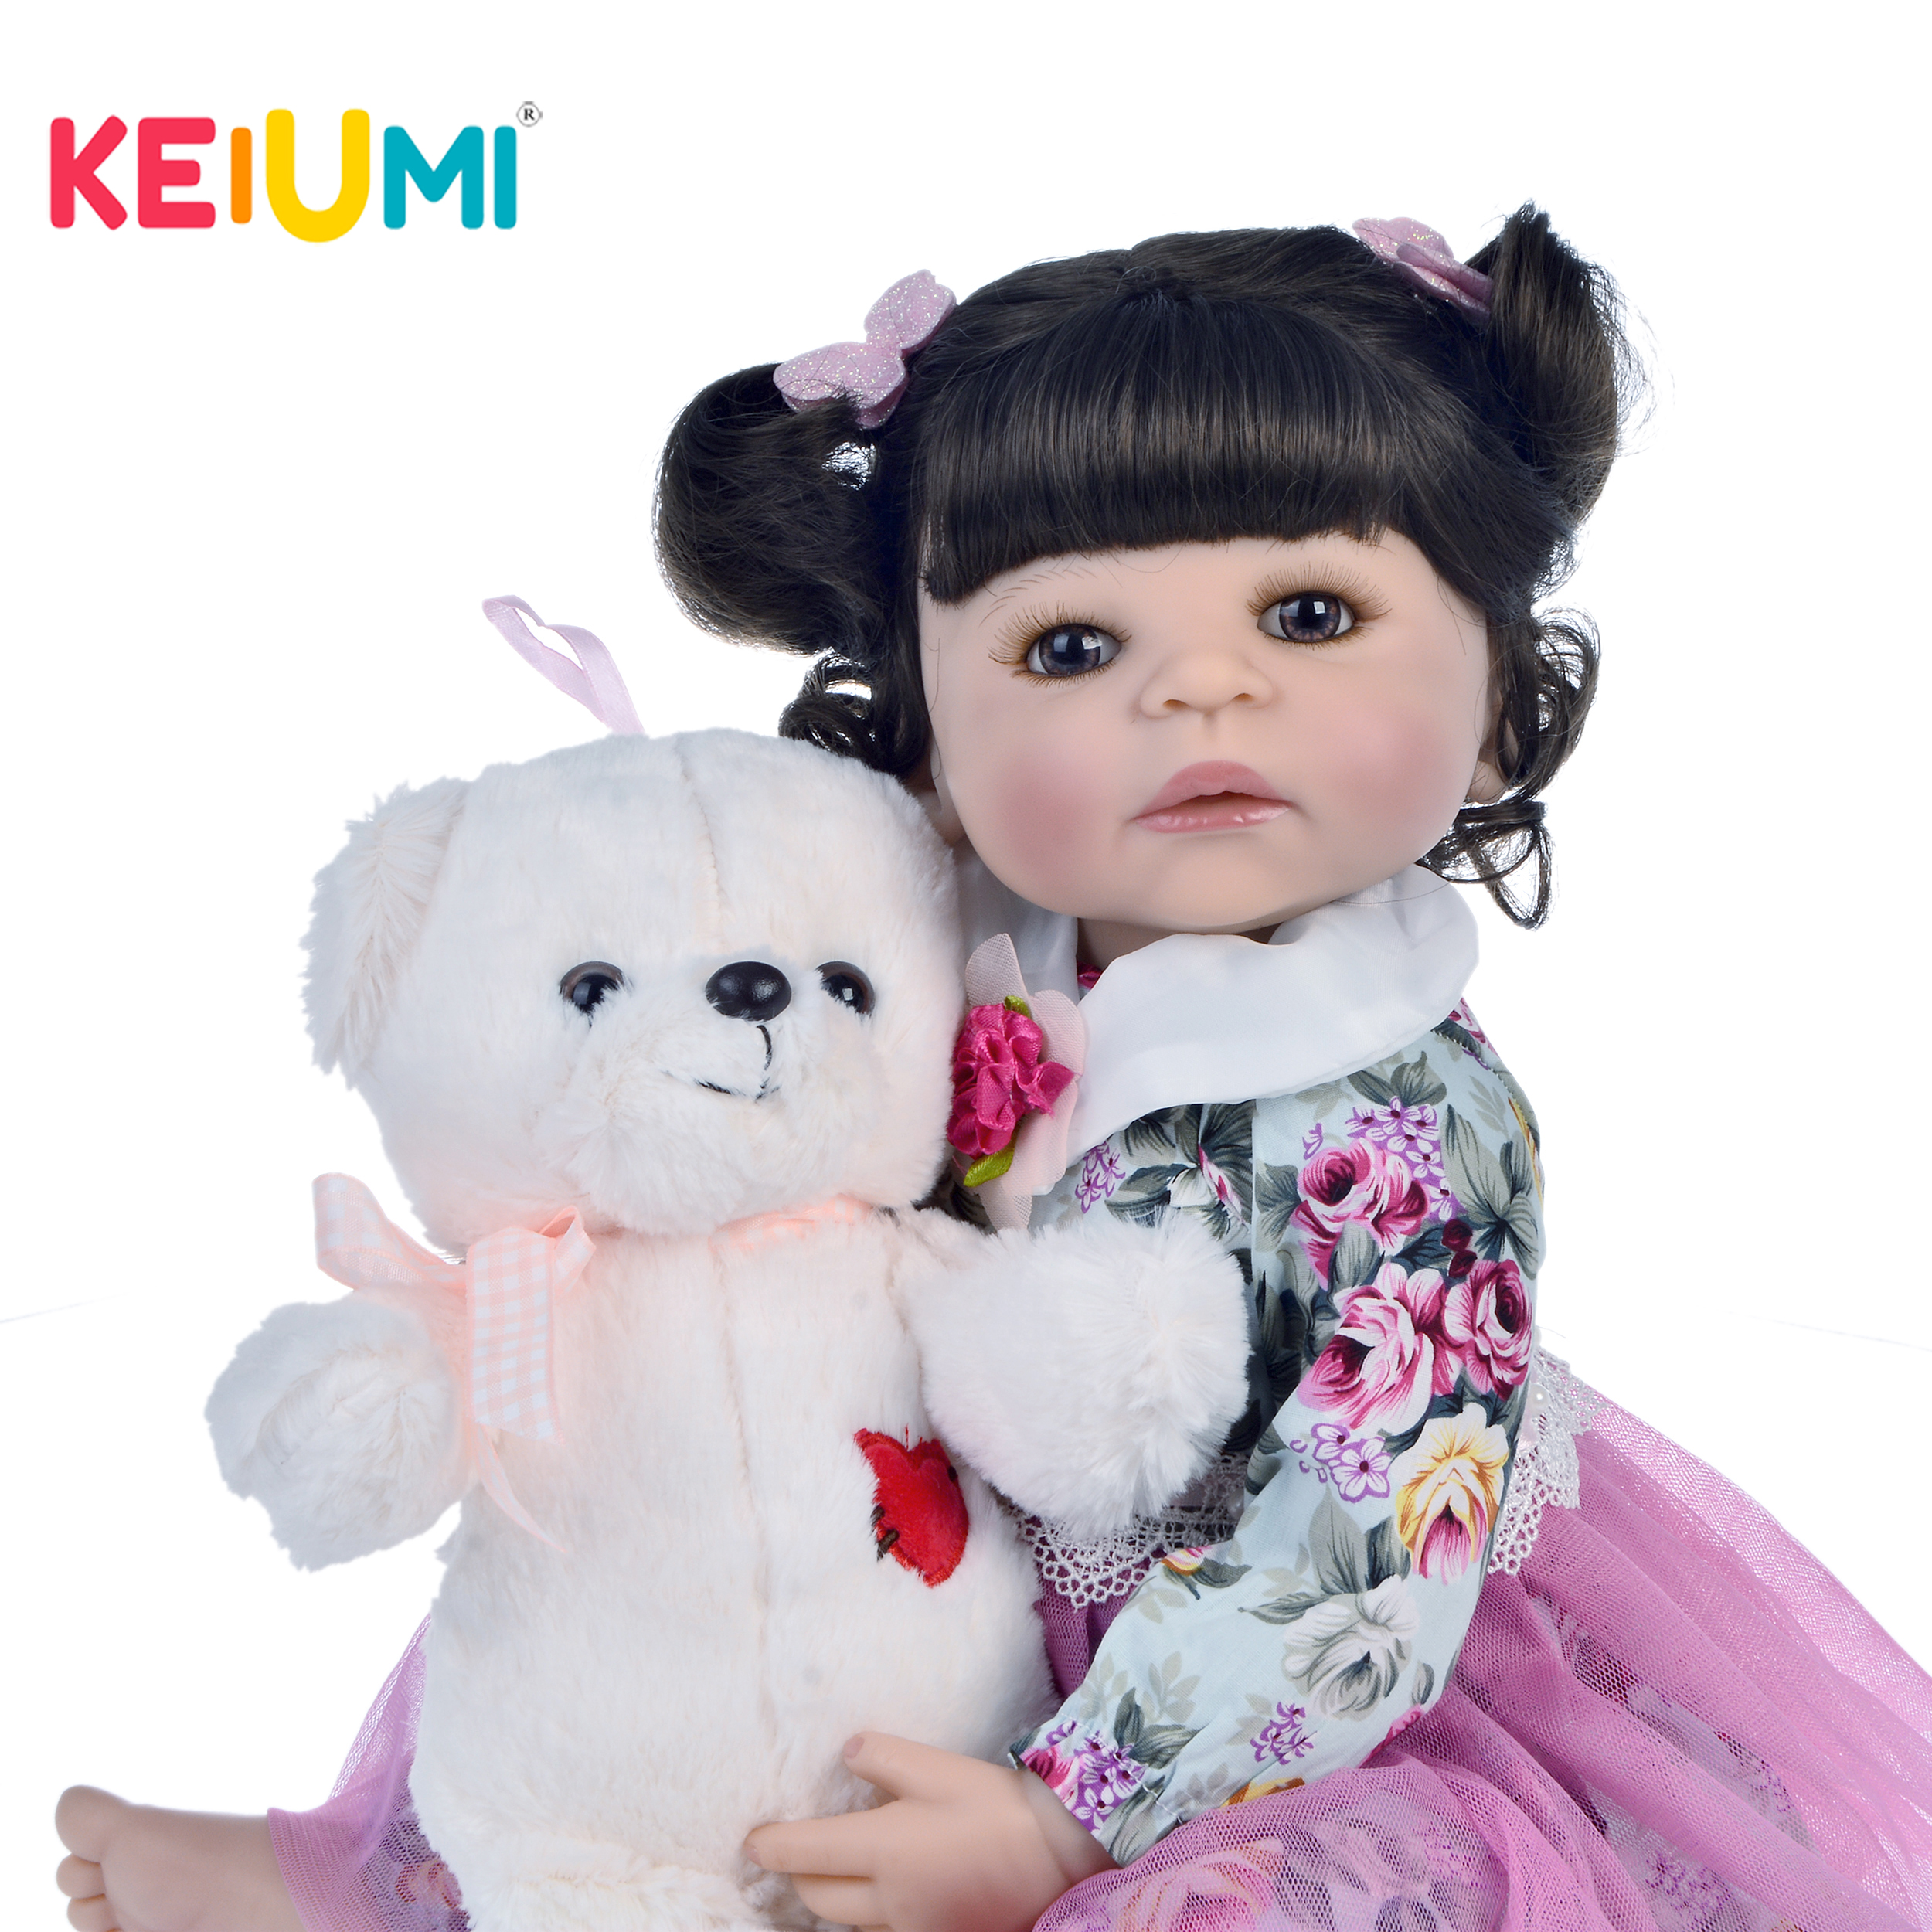 KEIUMI Hot Sale 22 Inch Reborn Doll Full Silicone Body Realistic Newborn Princess Toddler Babies Girl Boneca Bath Play House ToyKEIUMI Hot Sale 22 Inch Reborn Doll Full Silicone Body Realistic Newborn Princess Toddler Babies Girl Boneca Bath Play House Toy